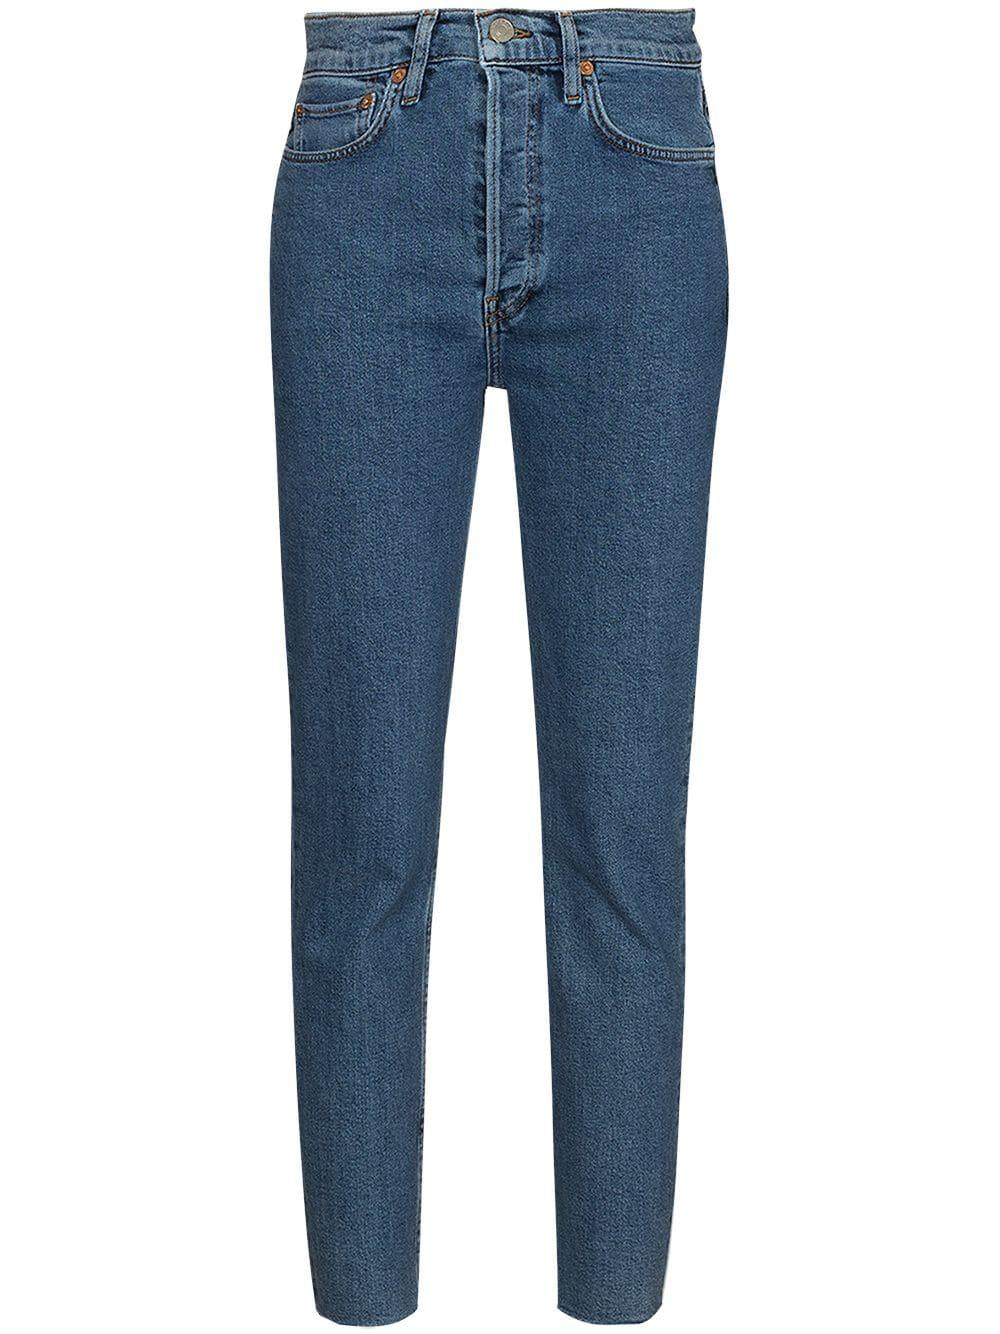 90s High Rise Cropped Jeans Item # 190-3WHRAC-S21